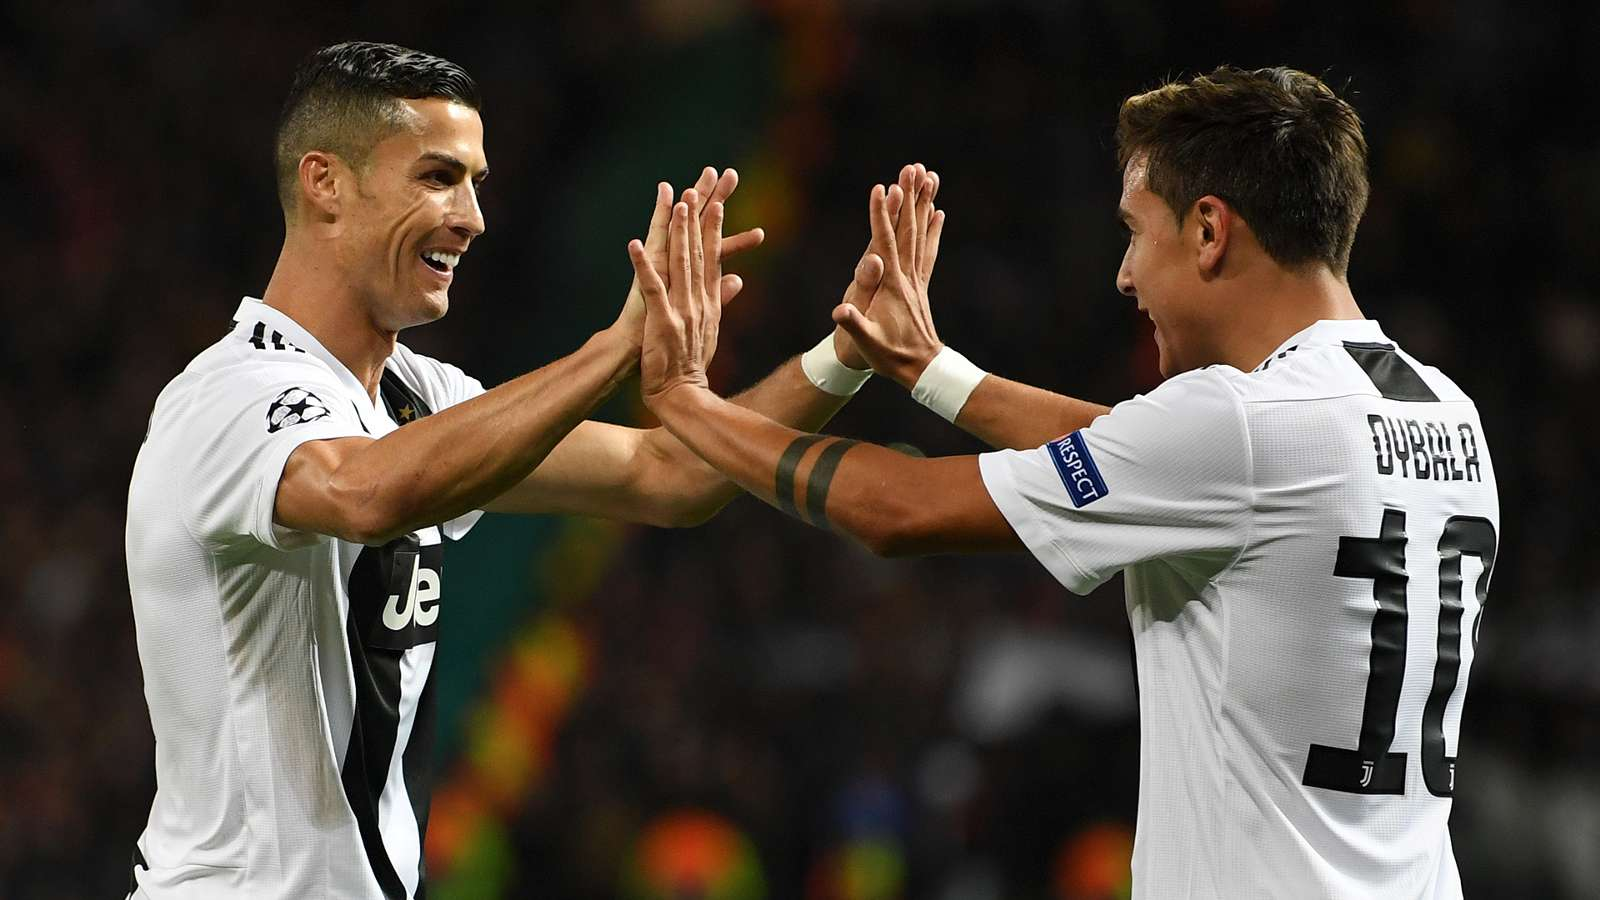 Roma Champions League hopes alive after late goal against Juventus